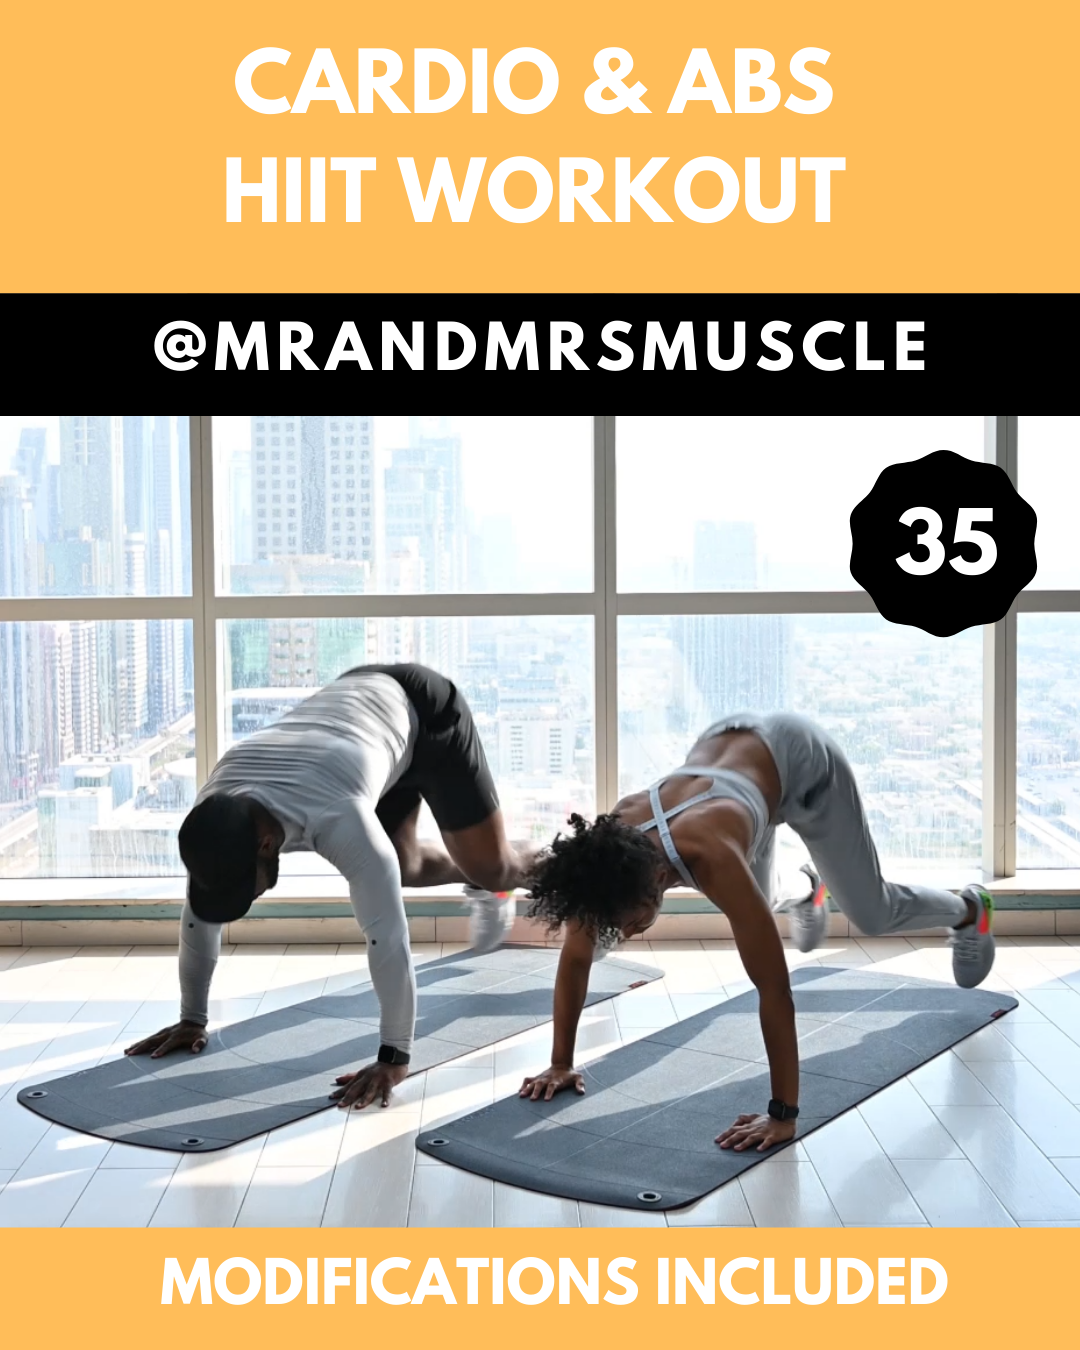 Cardio & Abs HIIT Workout  #goodcoreexercises